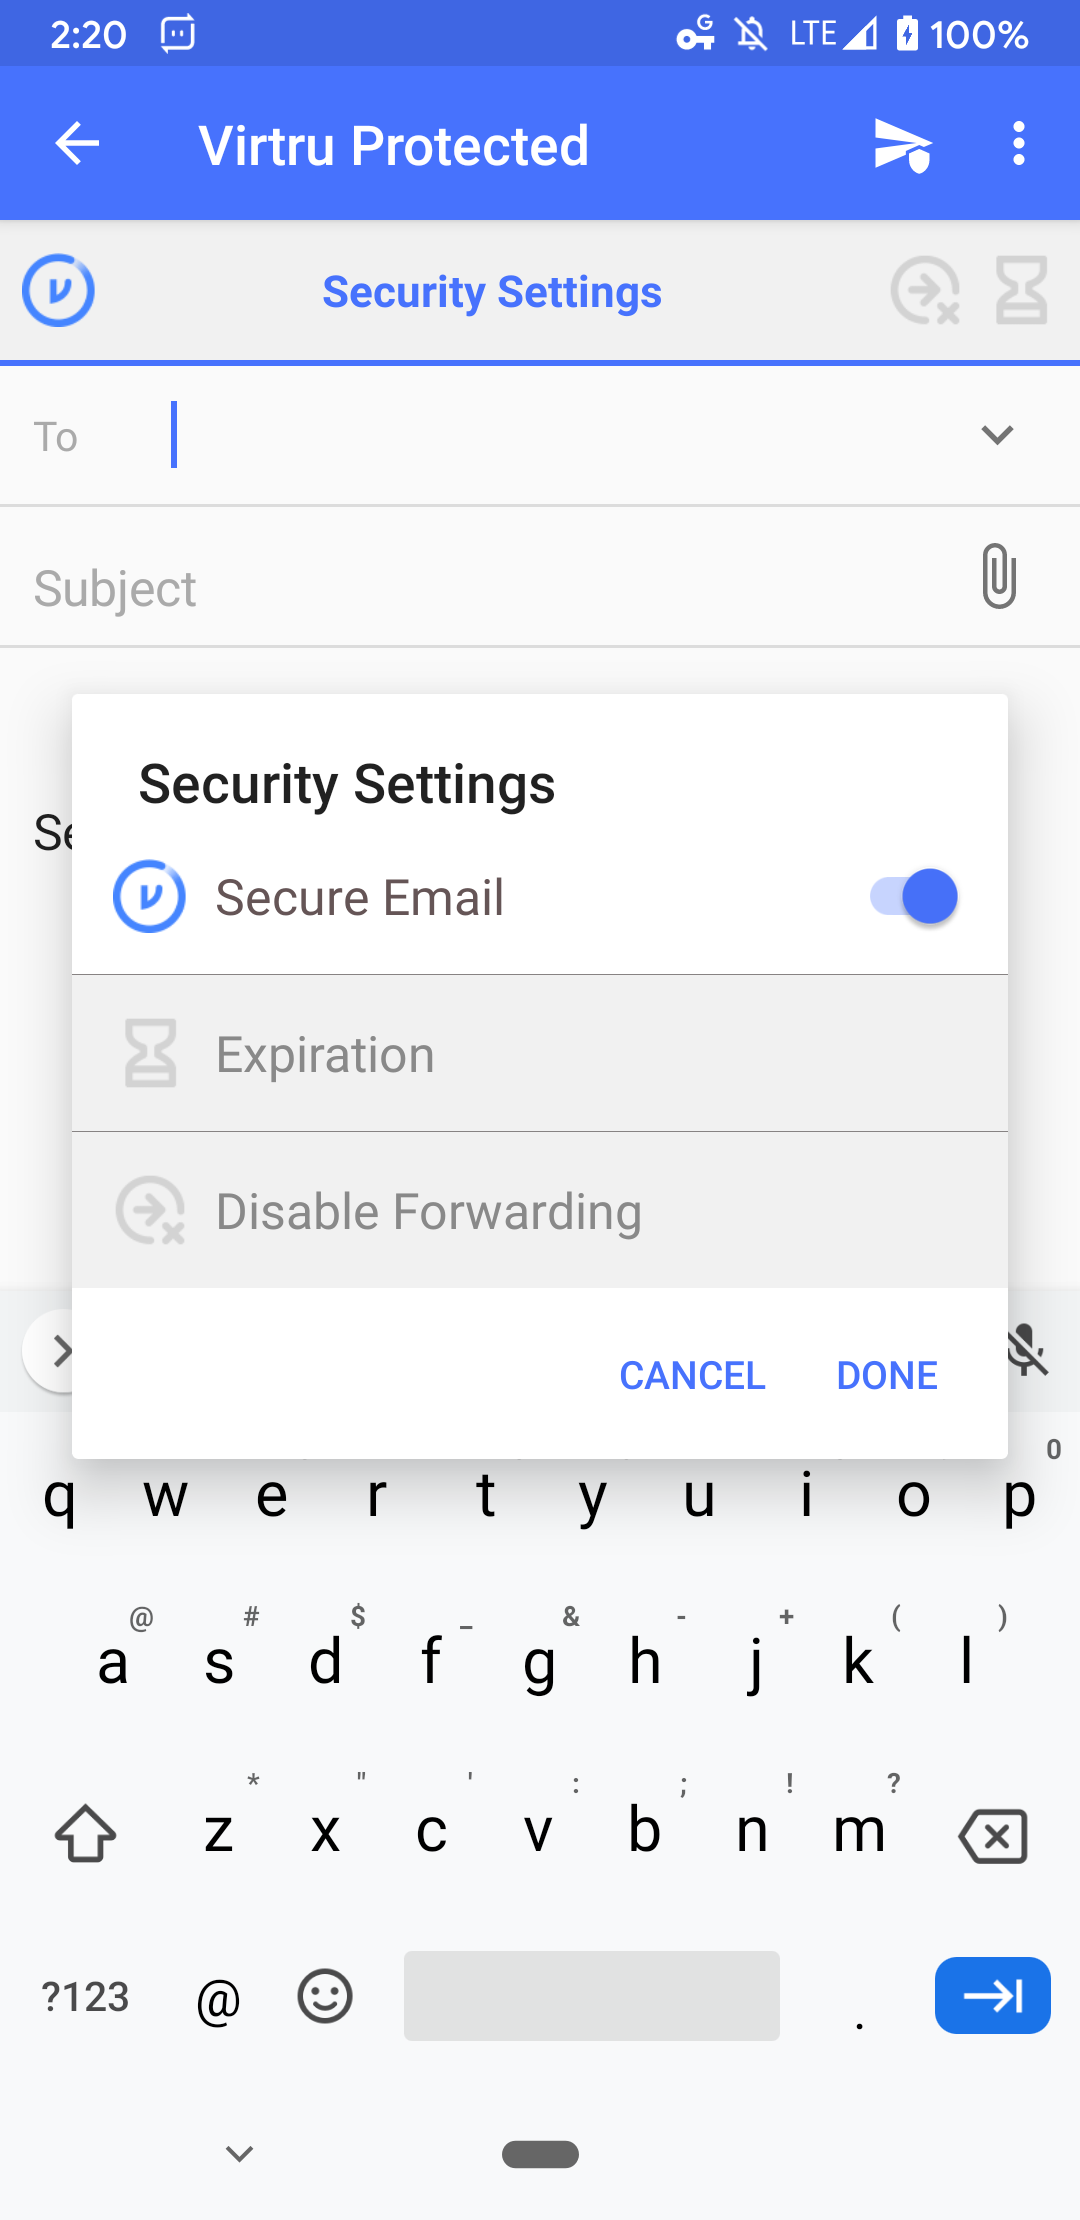 Secure email toggle option in Virtru Android app